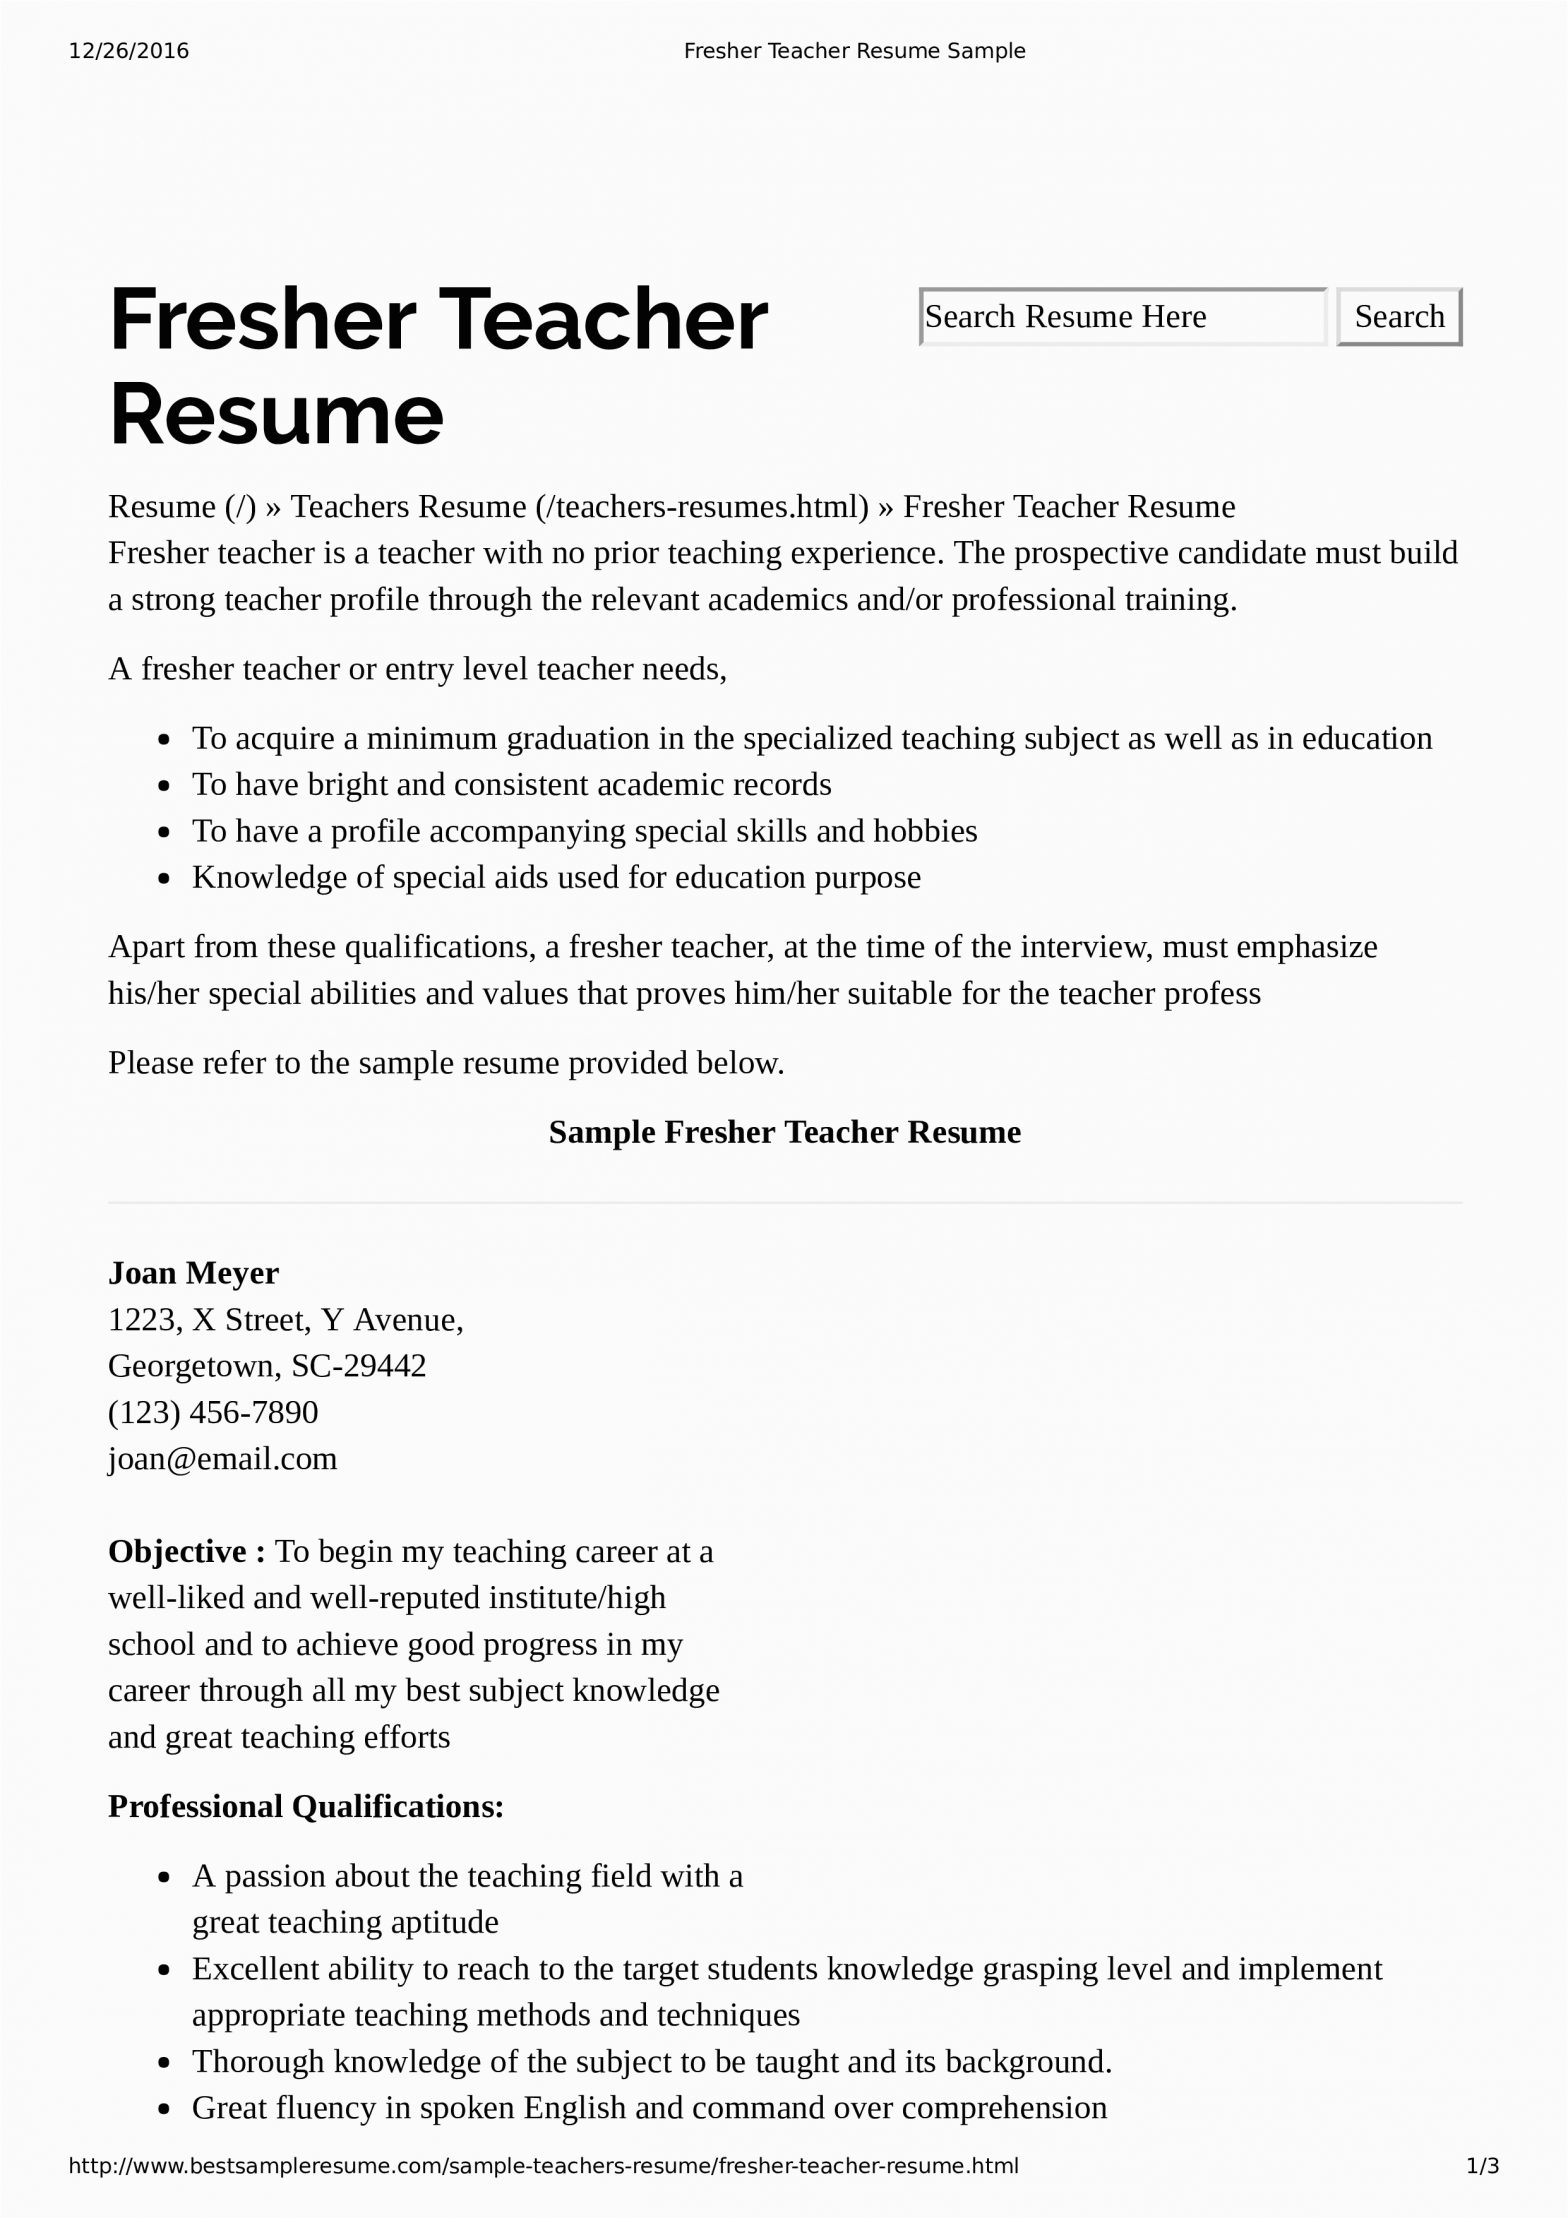 Sample Resume for Teaching Job with Experience Preschool Teacher Resume without Experience